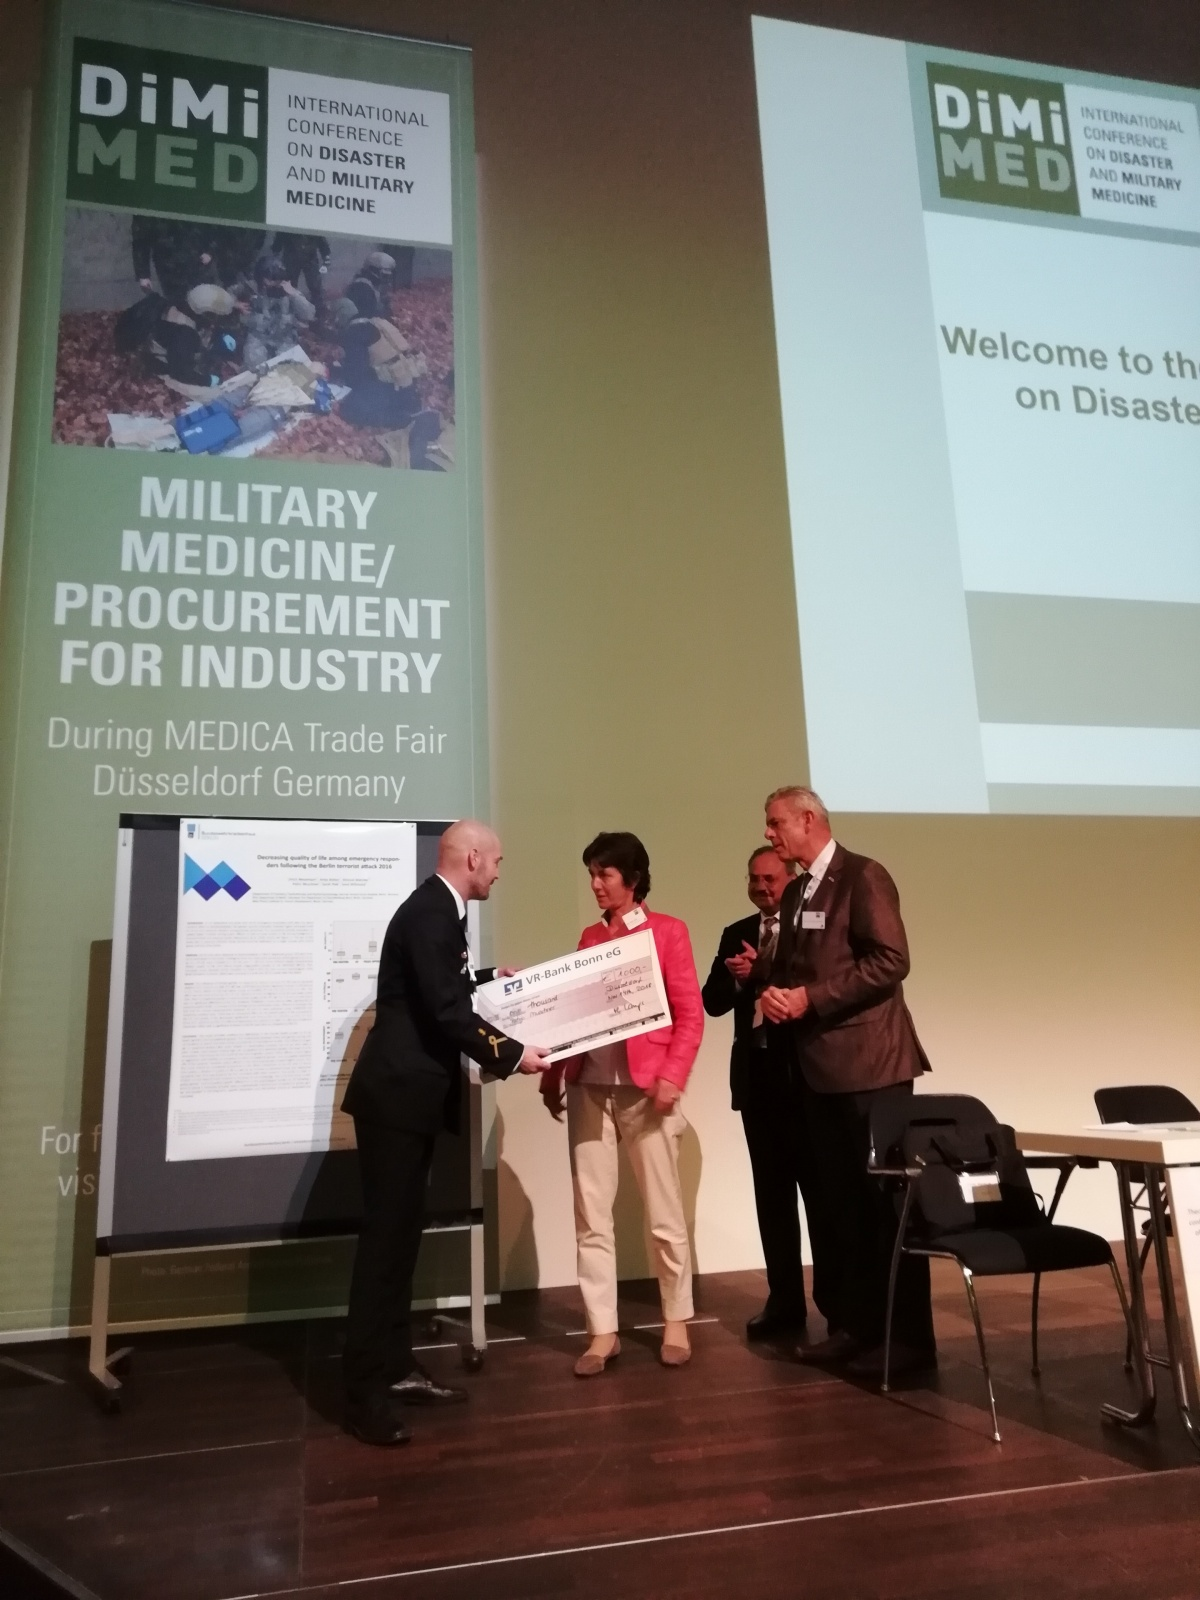 DiMiMED - International Conference on Disaster and Military Medicine